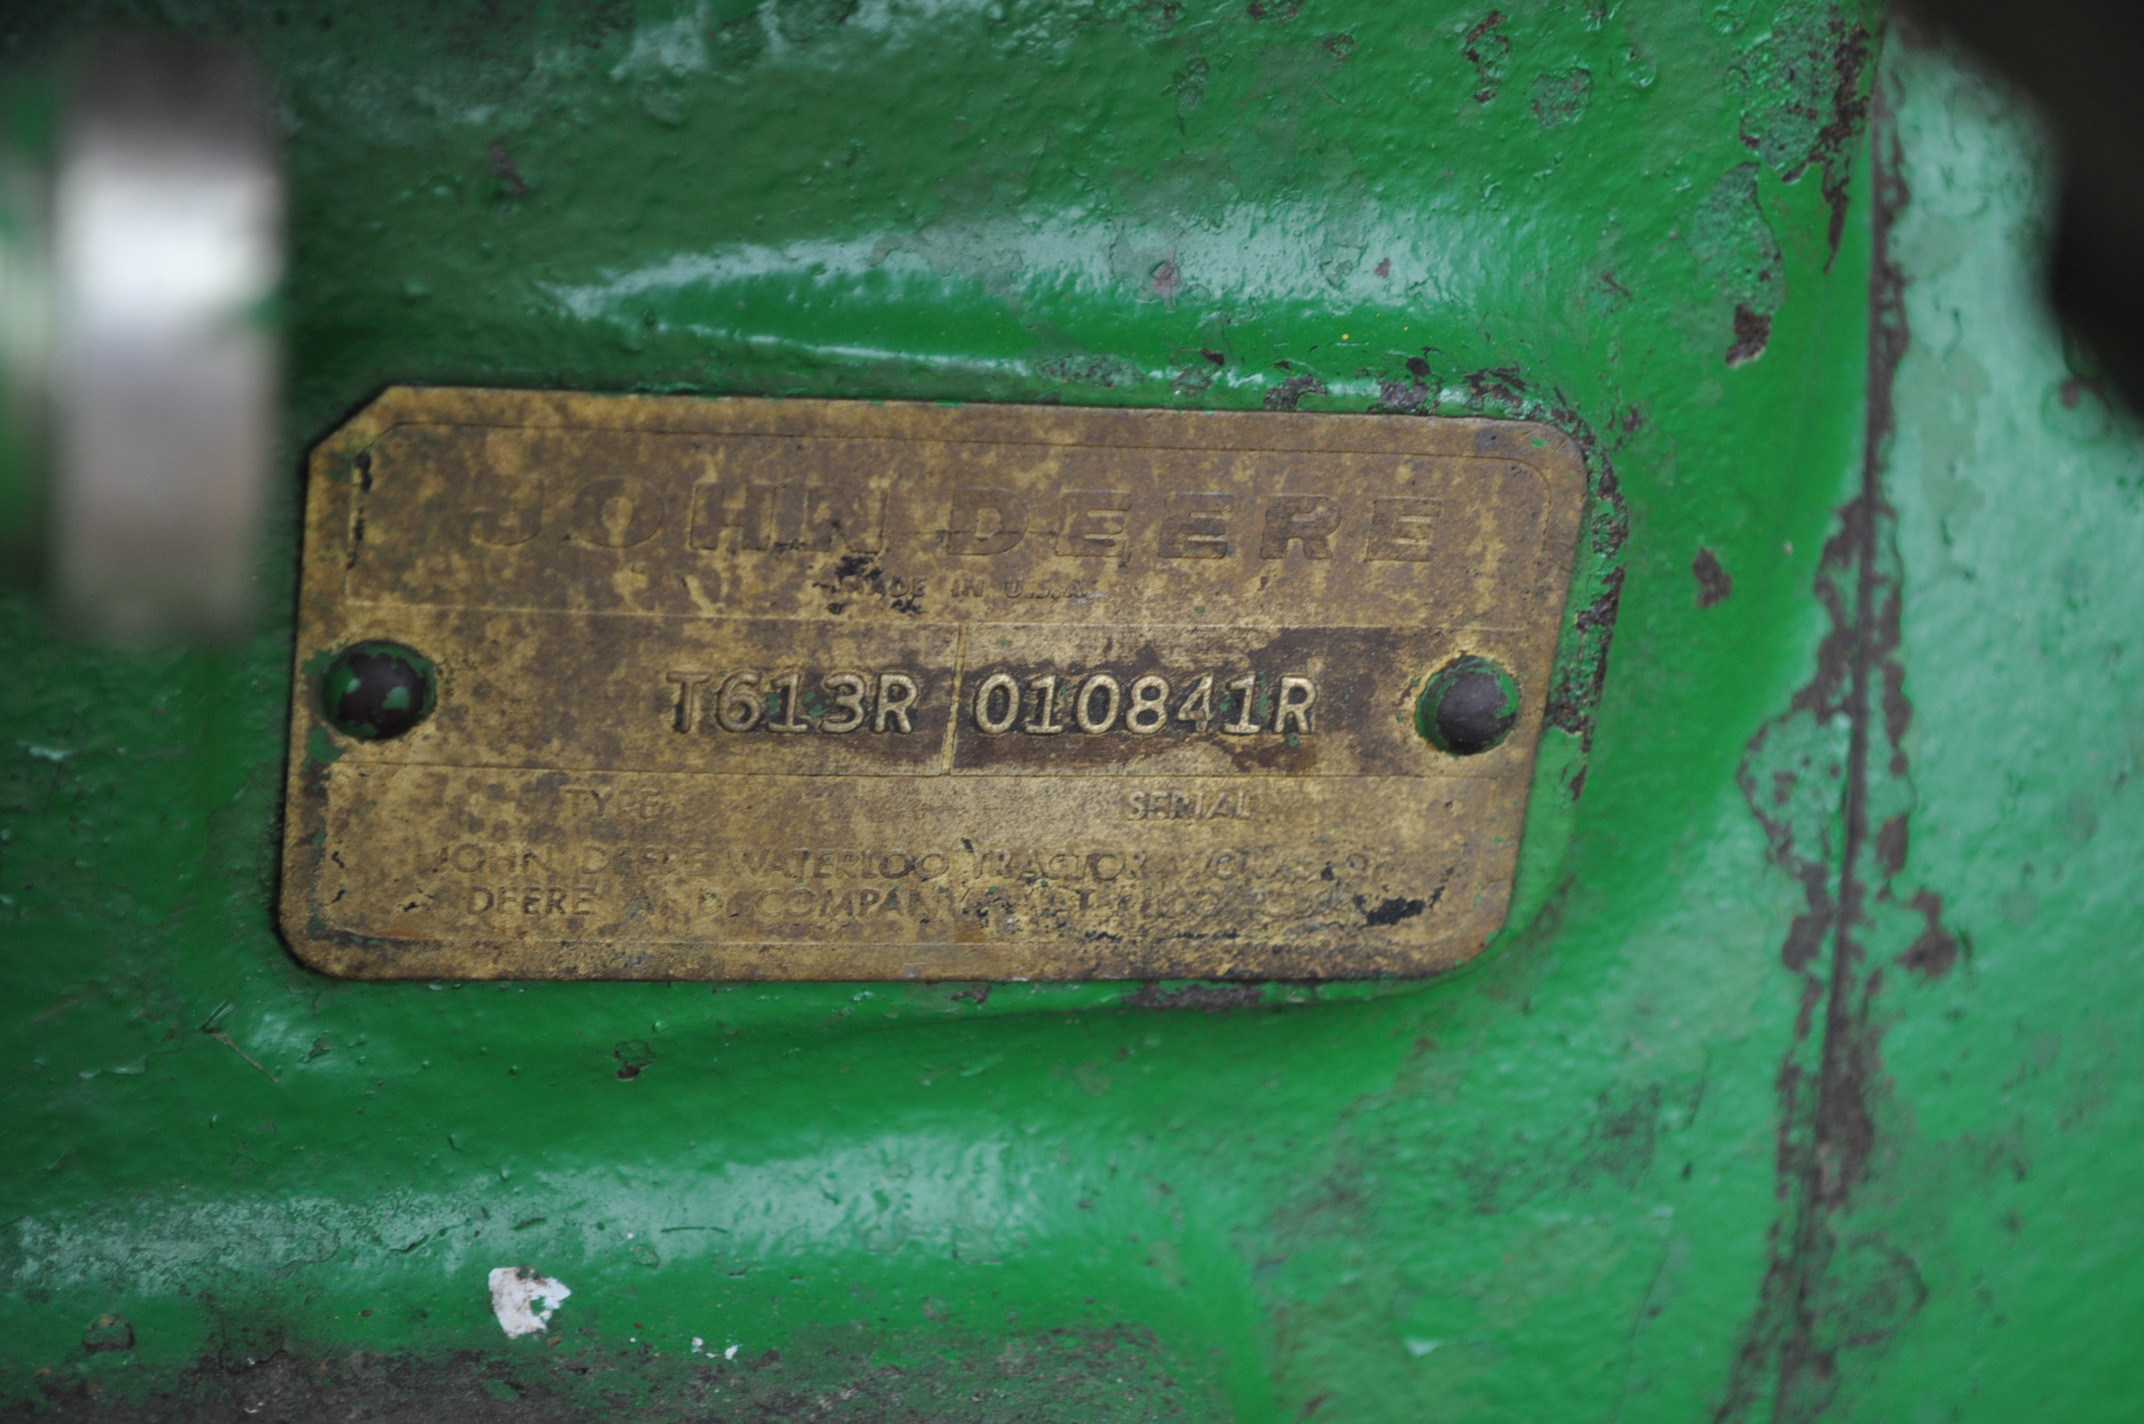 John Deere 4320 tractor, diesel, 18.4-38 duals, 10.00-16 wide front, Syncro, 2 hyd remotes, 540/1000 - Image 15 of 20